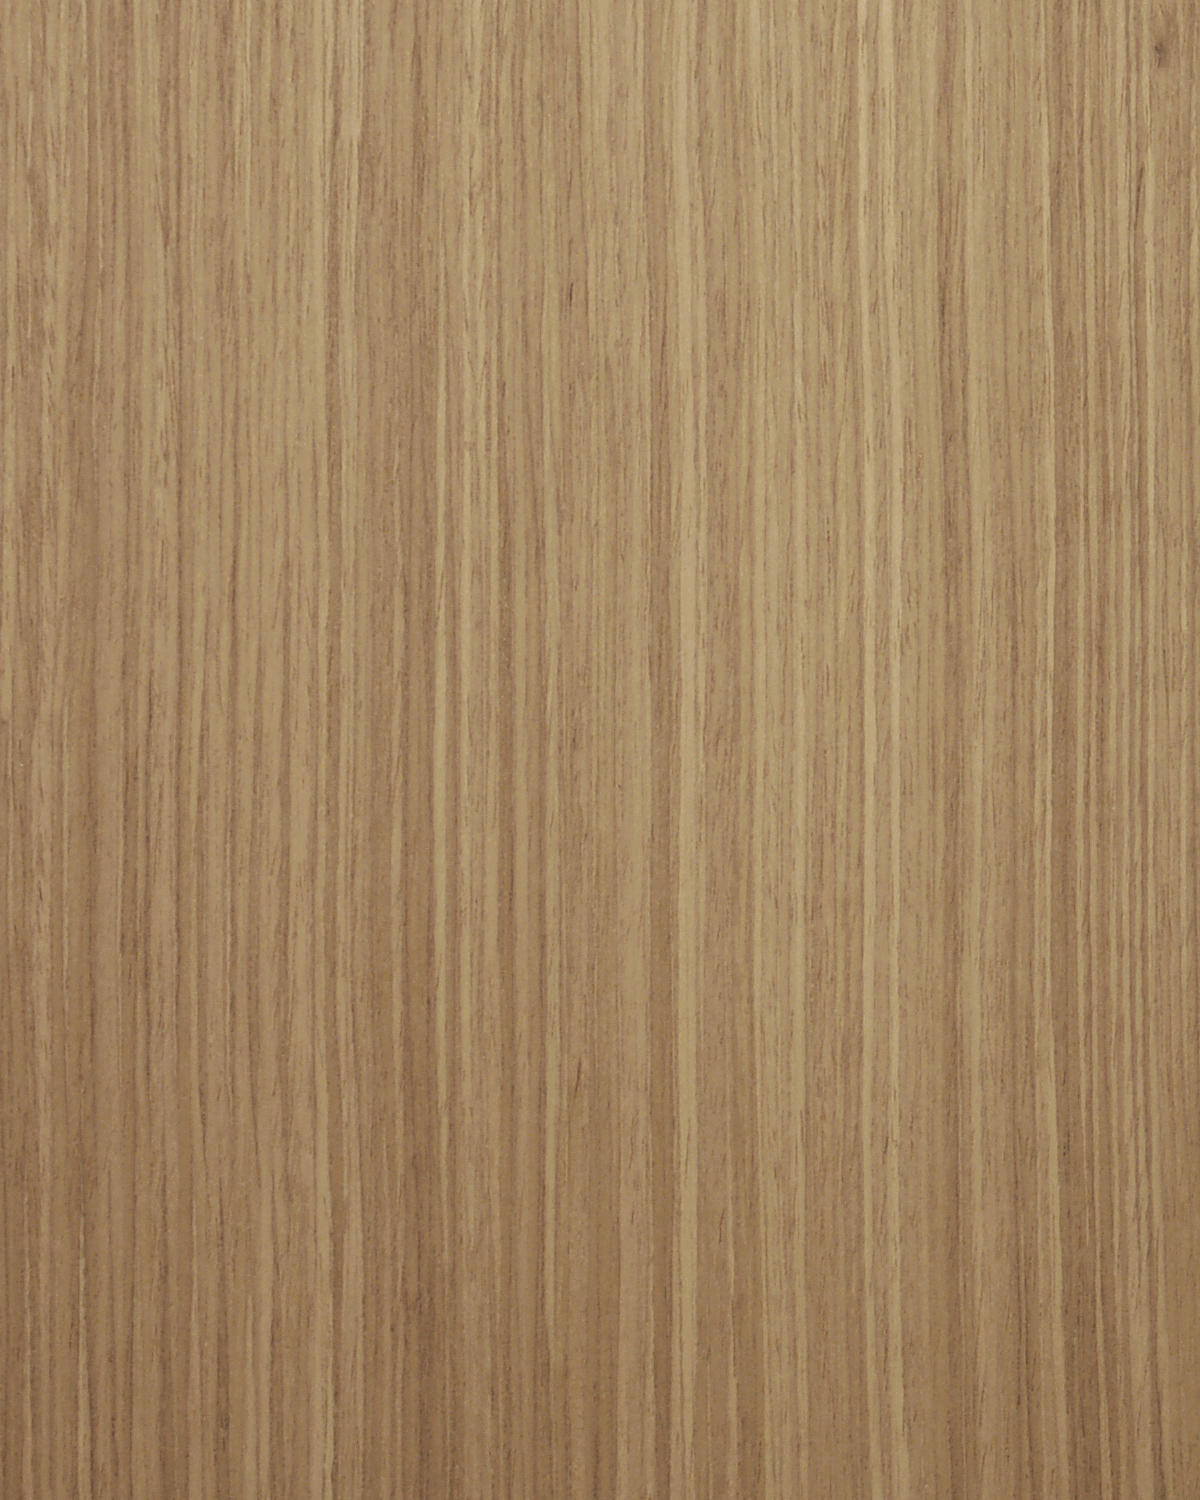 68009 Walnut Straight Grain Unfinished Wood Veneers From